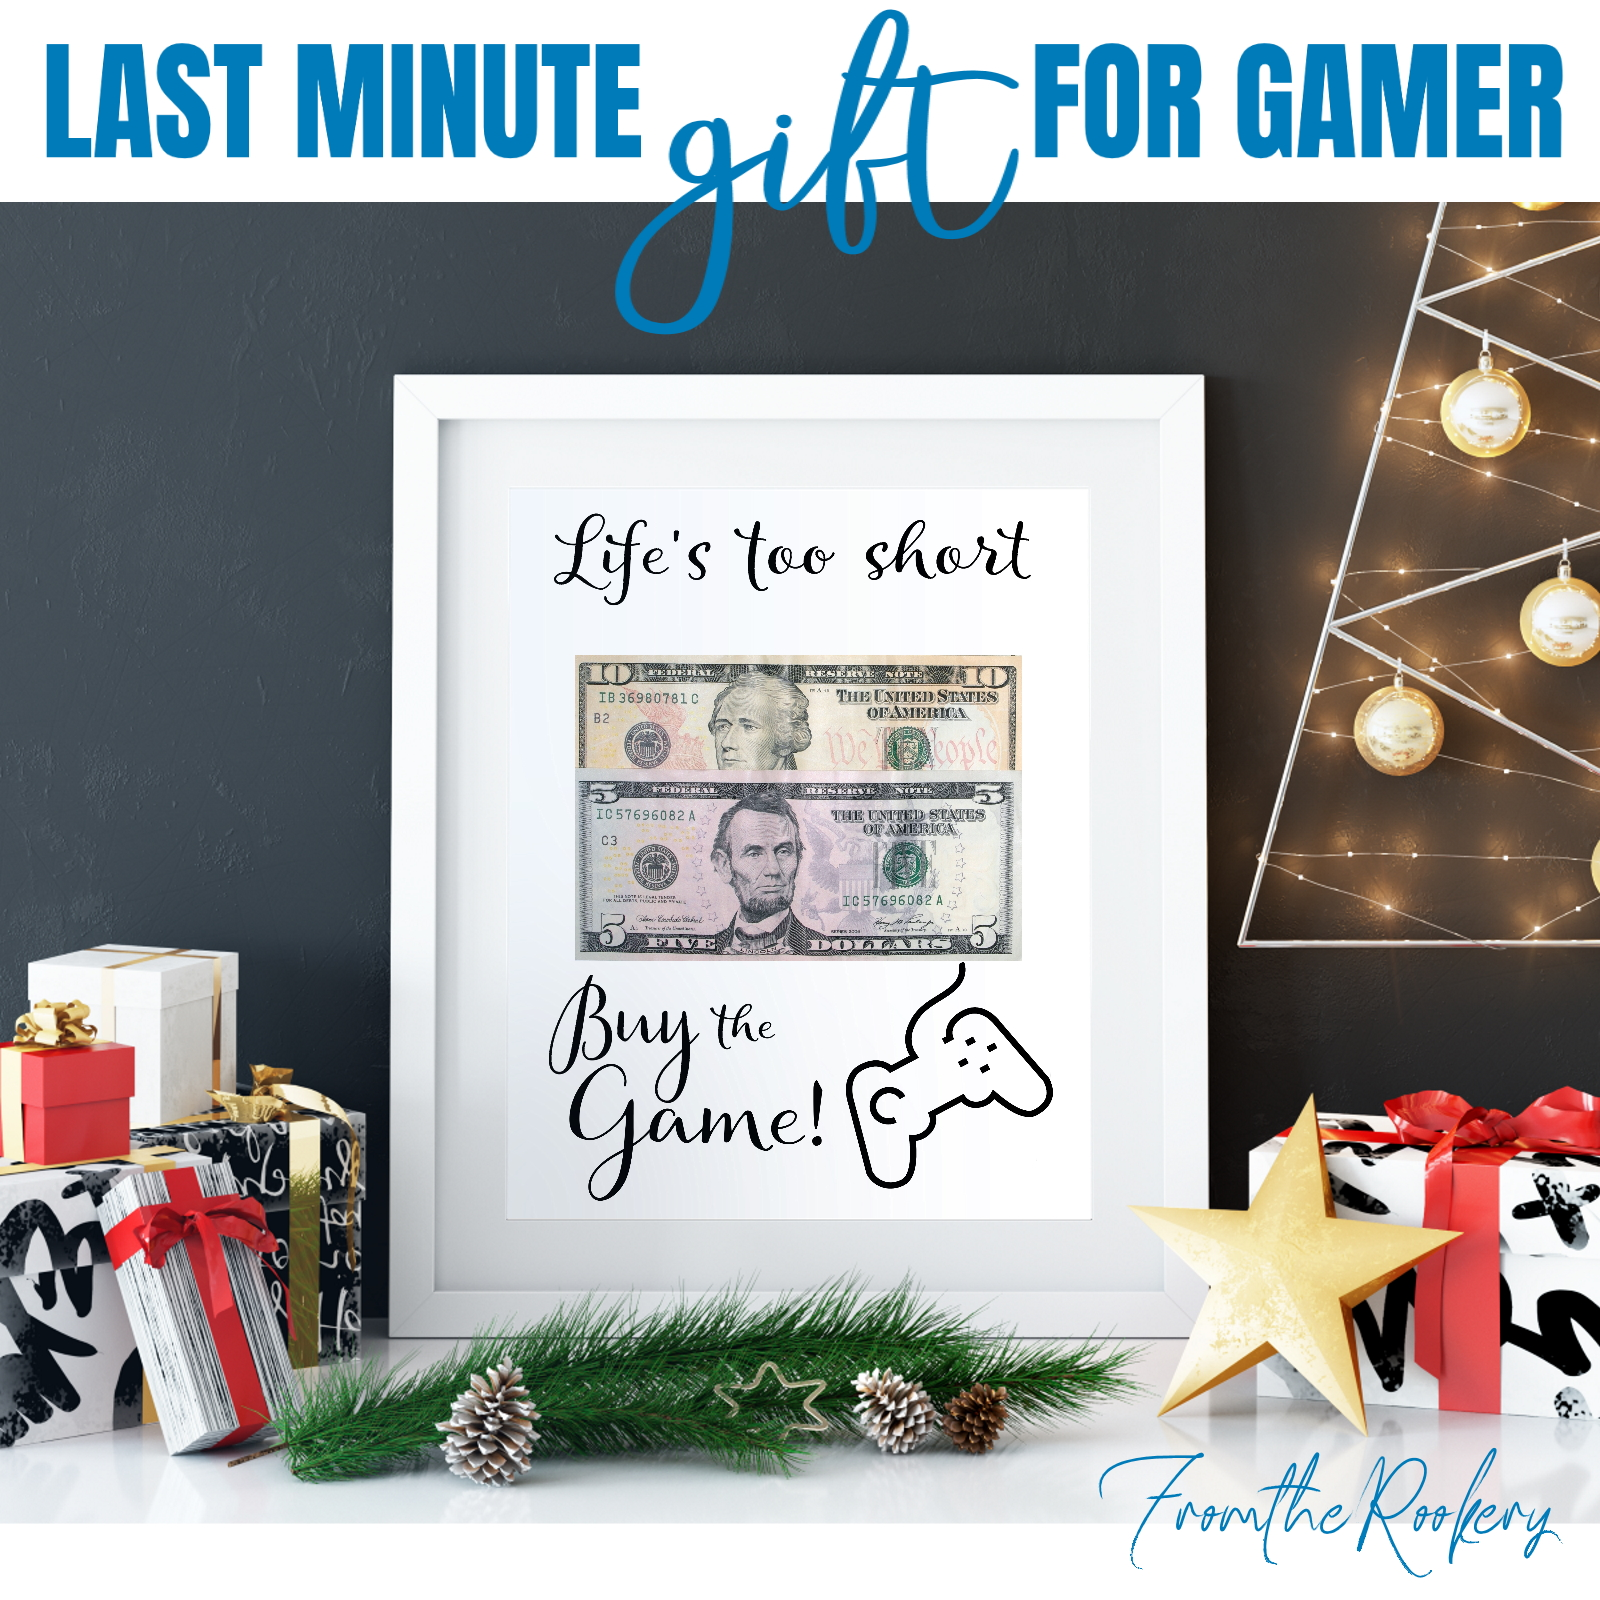 Gifts for Gamer